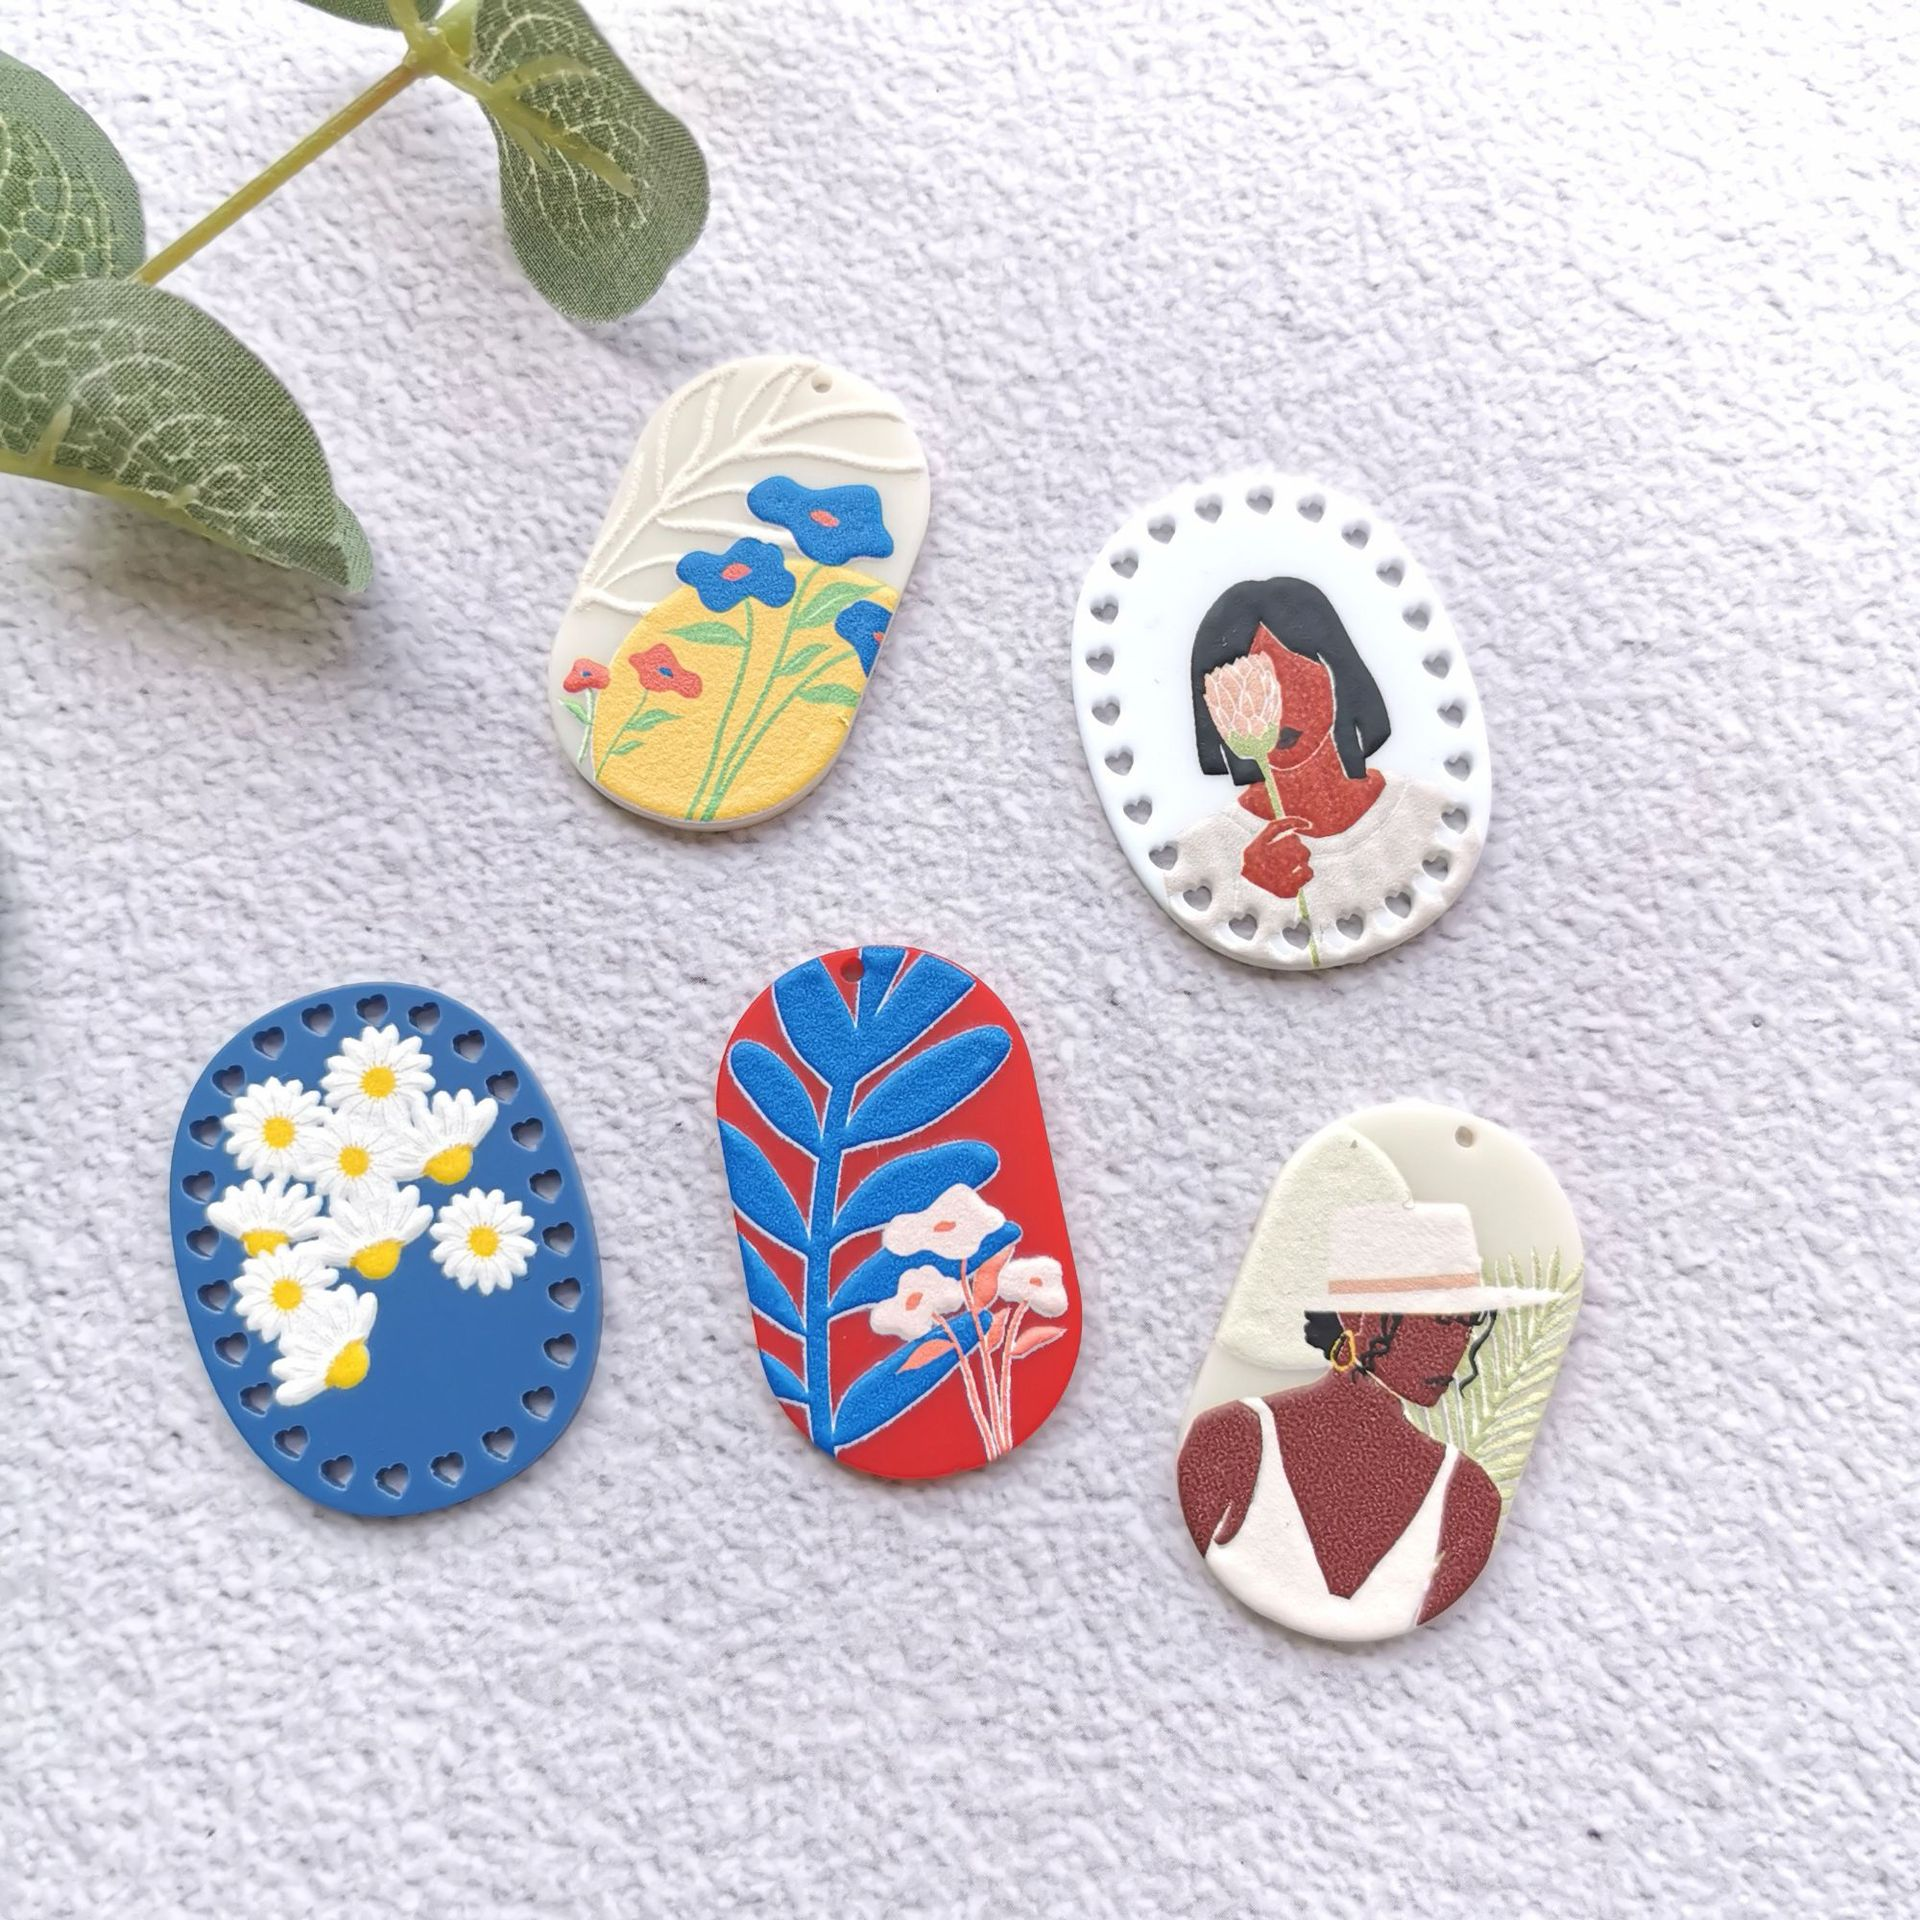 50PCS Flower Retro Beauty Avatar Painting Jewelry Accessories Earrings Connectors DIY Pendant Jewelry Findings Components Charms